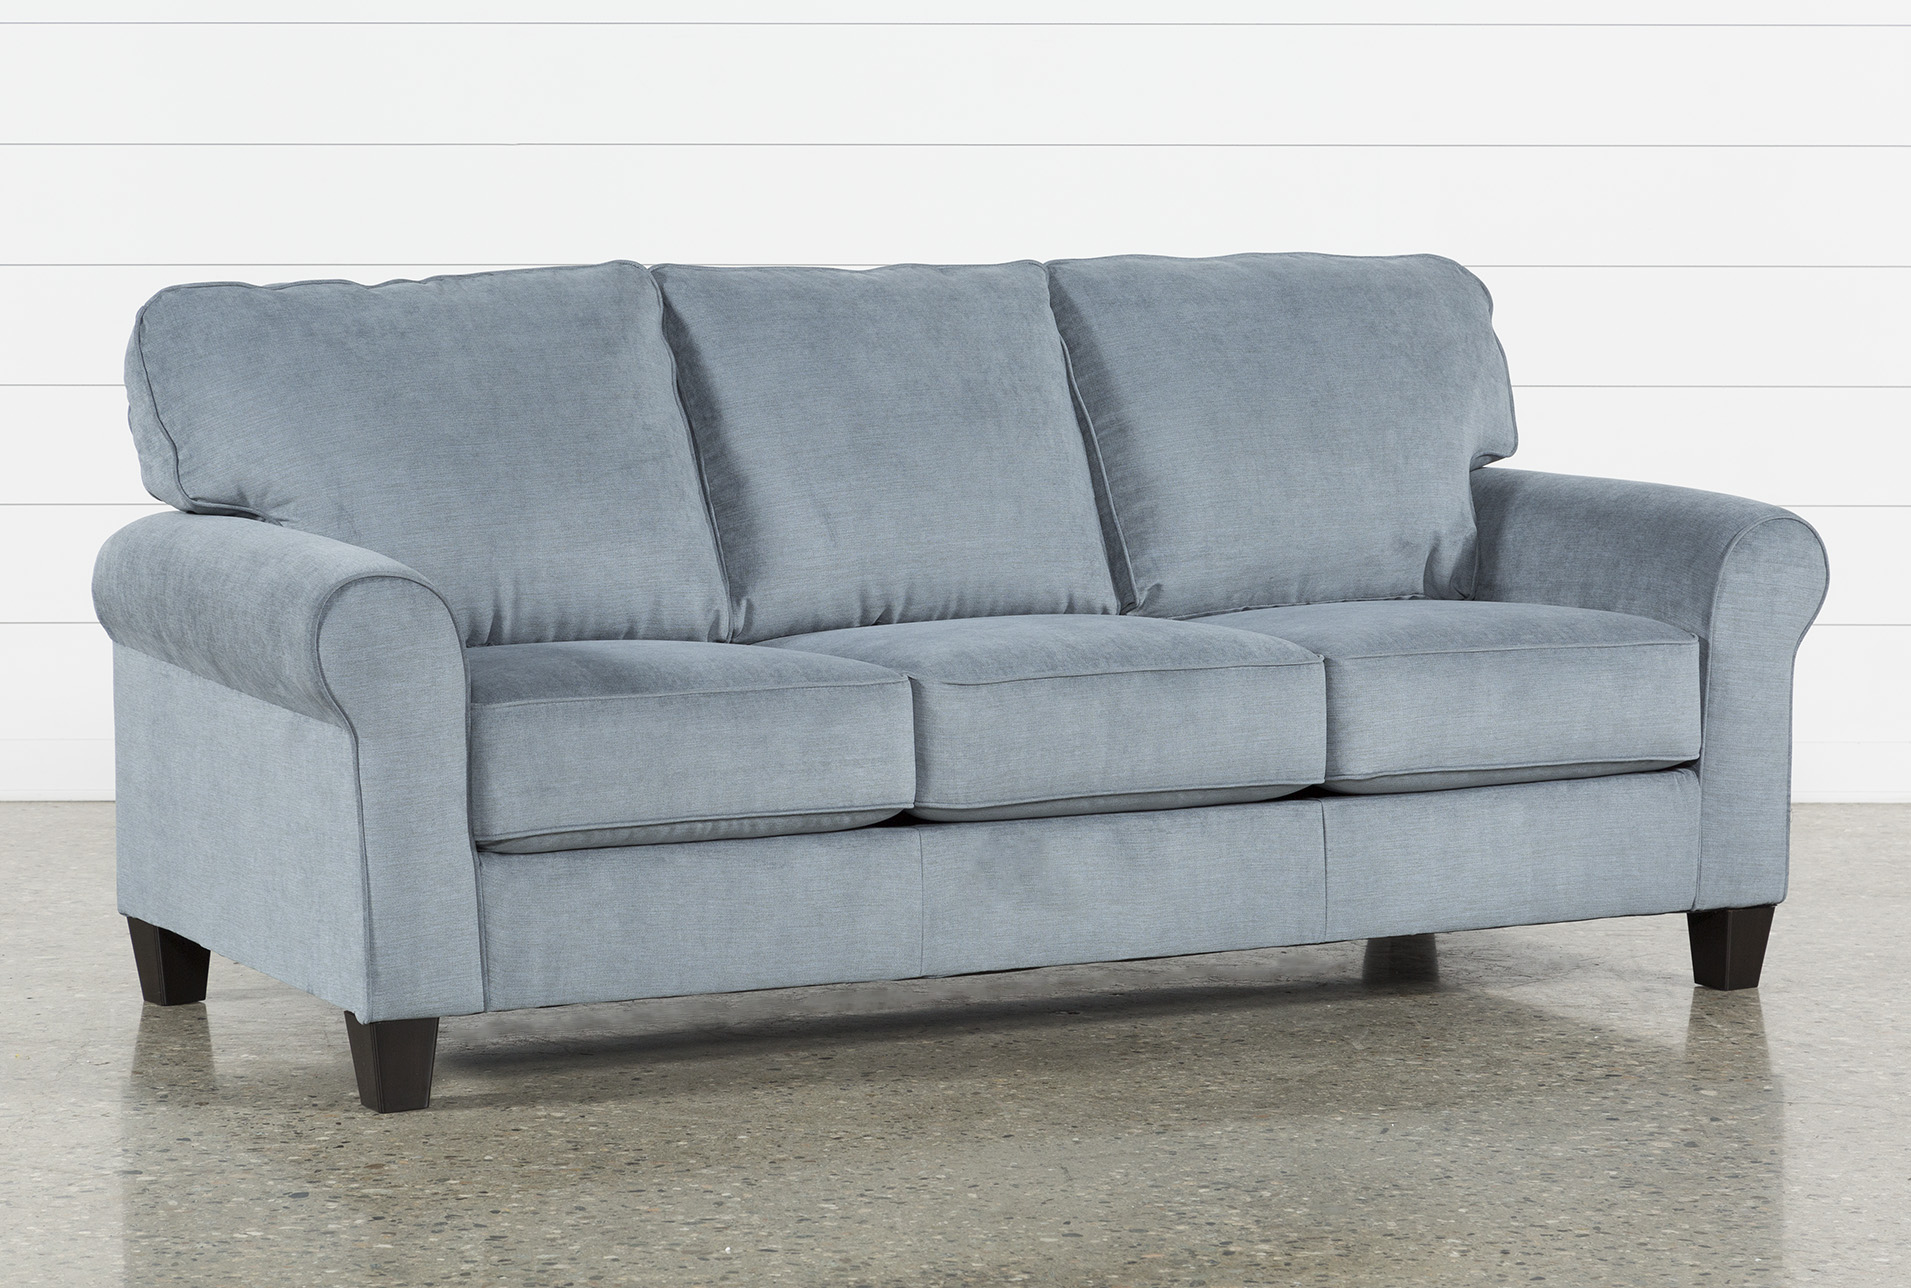 Neah Sofa | Living Spaces